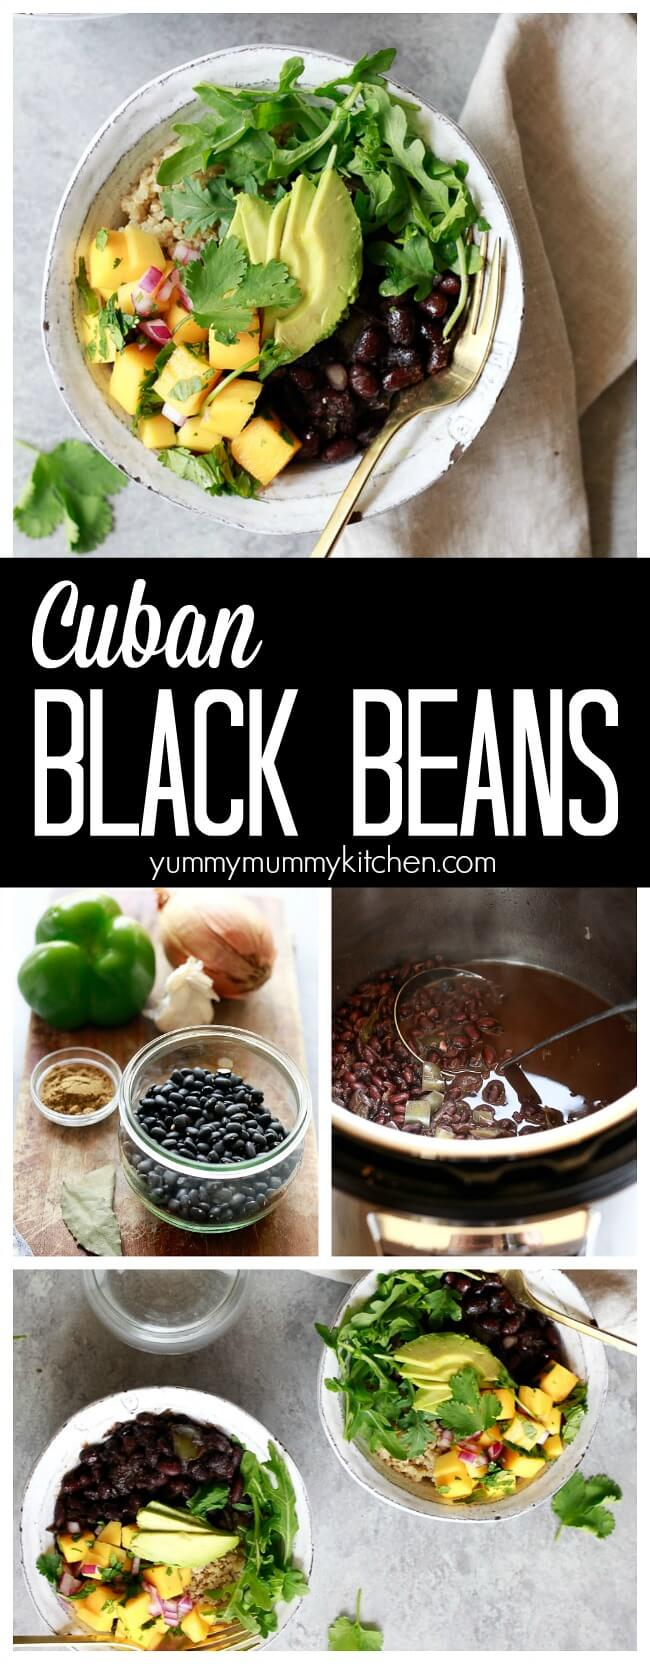 How to make Cuban black beans in the Instant Pot pressure cooker or on the stovetop. This easy recipe for Cuban black beans is so delicious and perfect in rice grain bowls with mango salsa or in tacos, burritos, and enchiladas. These Cuban black beans are vegan and gluten-free.